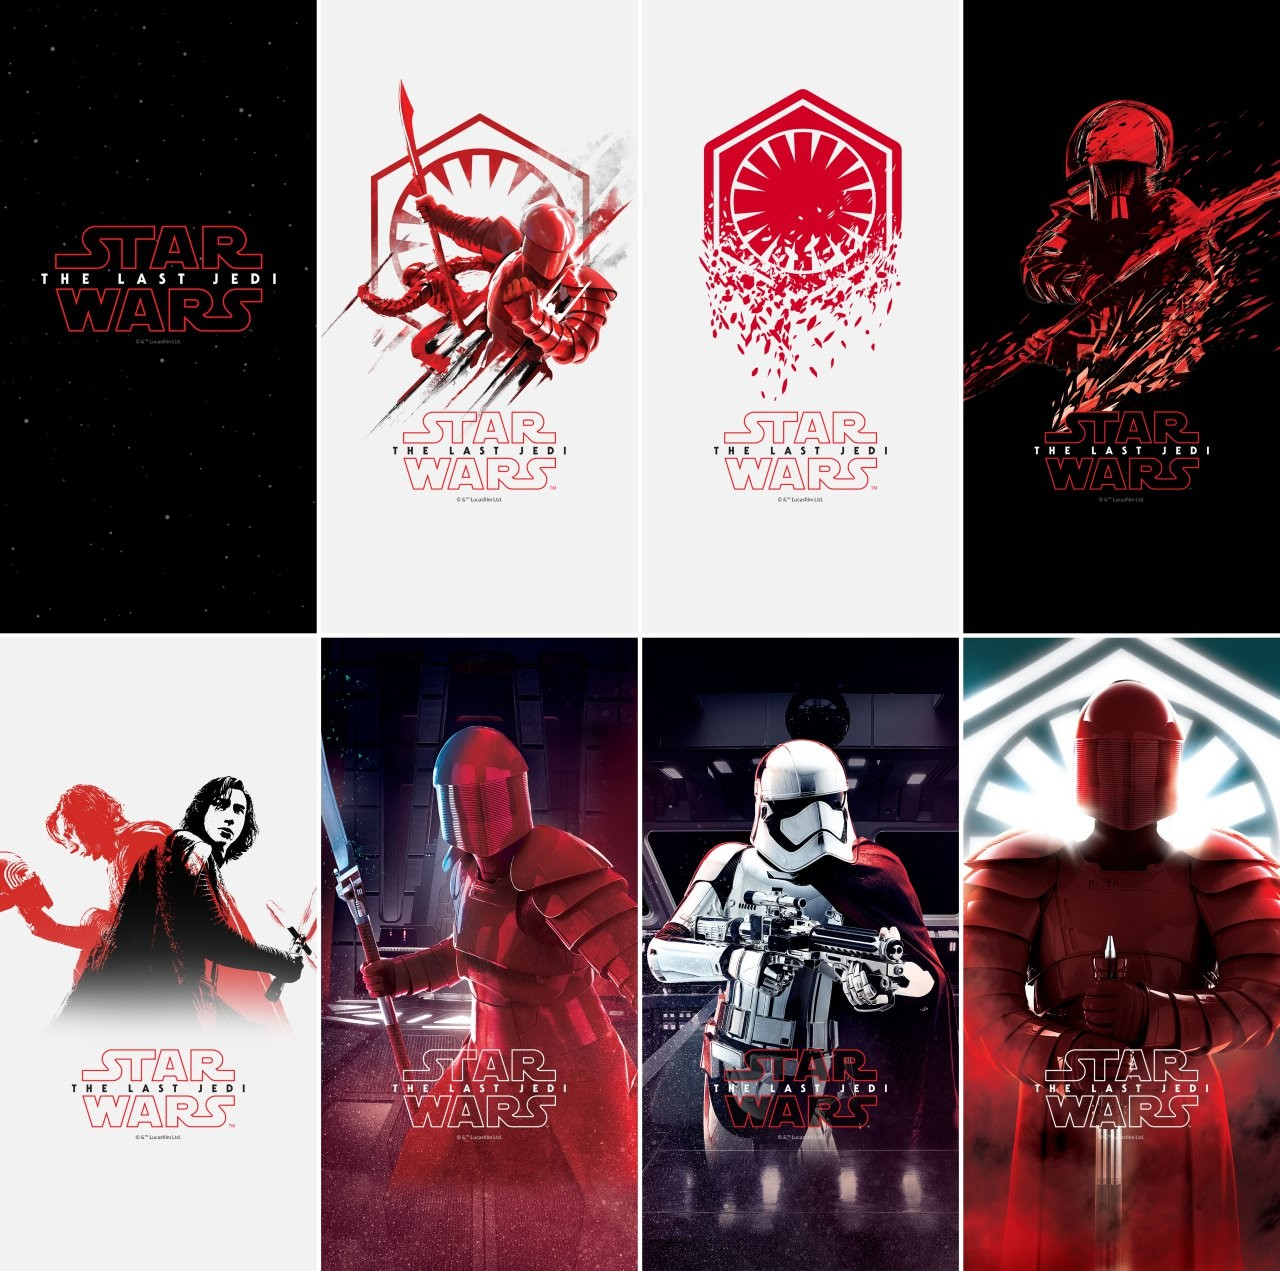 Download The OnePlus 5T Star Wars Edition wallpapers